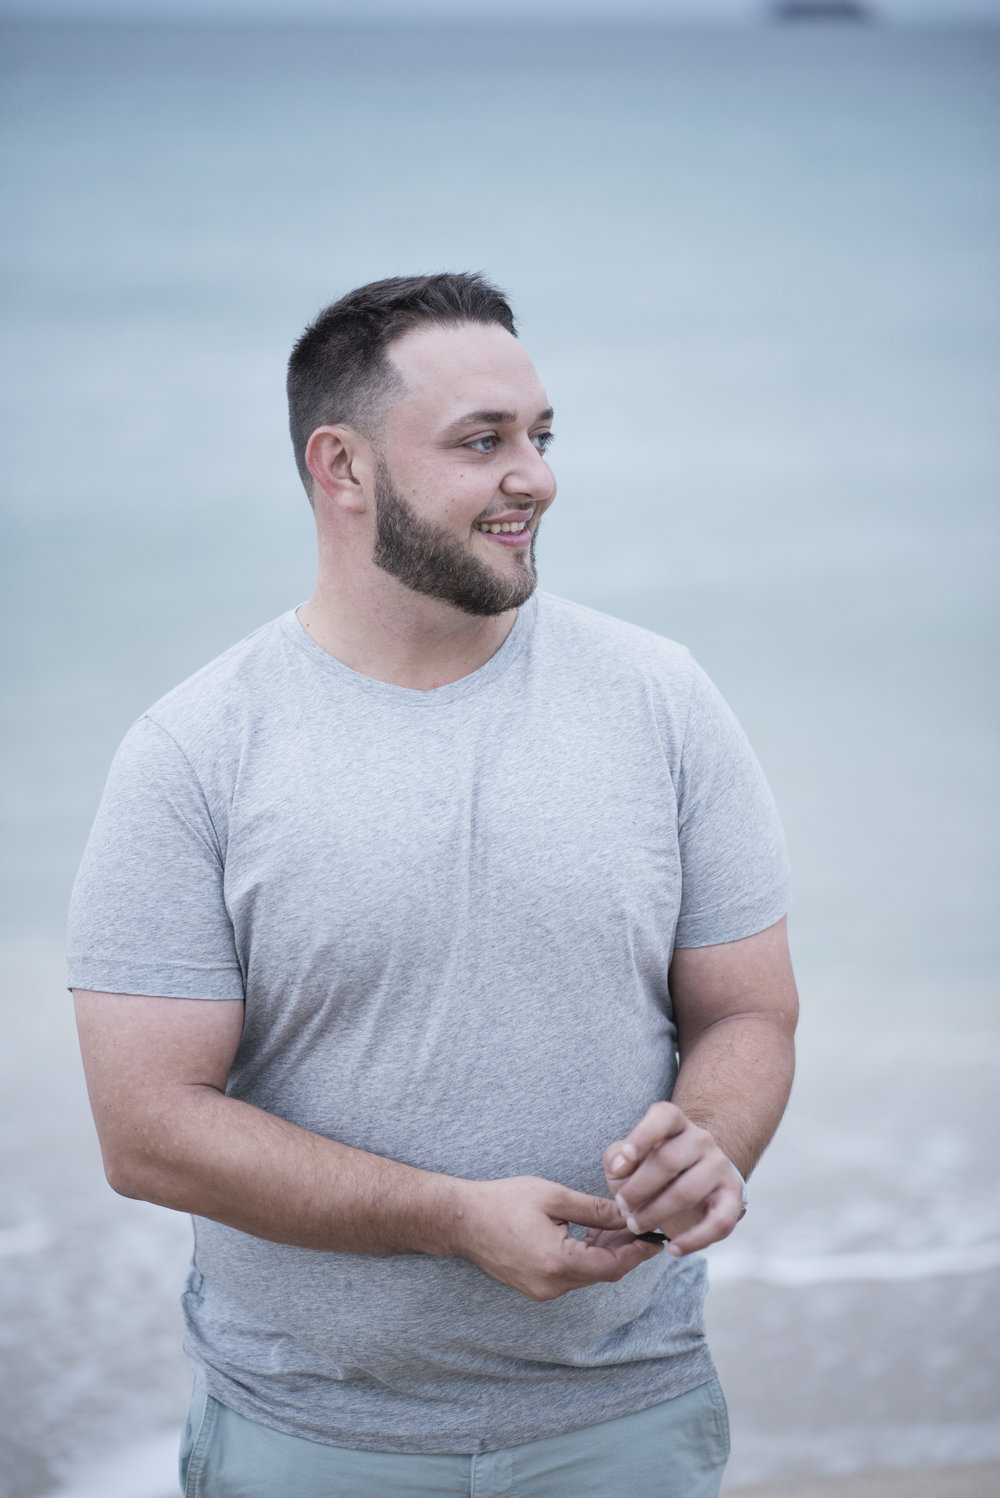 Groom to be Ben on the beach in Florida.  Engagement photos in Florida.  Las Vegas Wedding Planner Andrea Eppolito.  Image by AltF Photography.